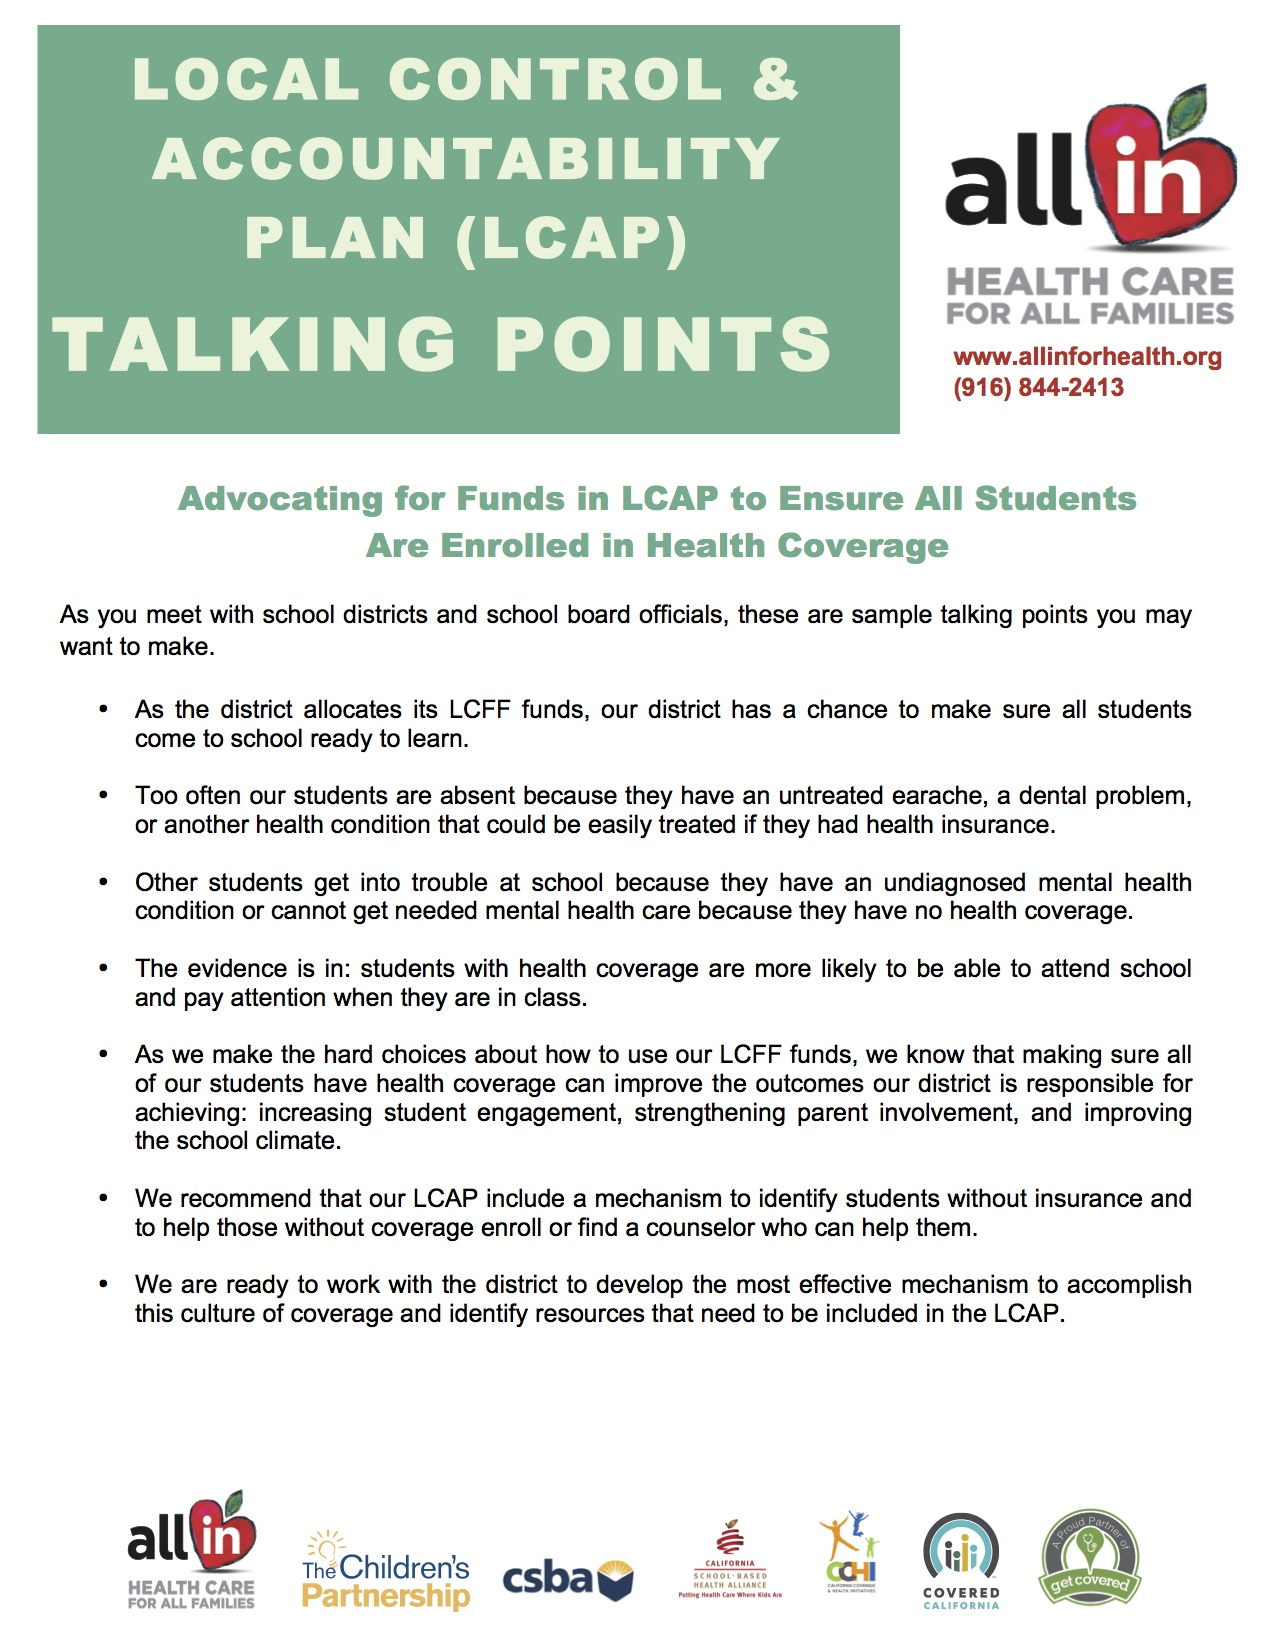 LCAP_talking_points_w_logos3.21.14.jpg